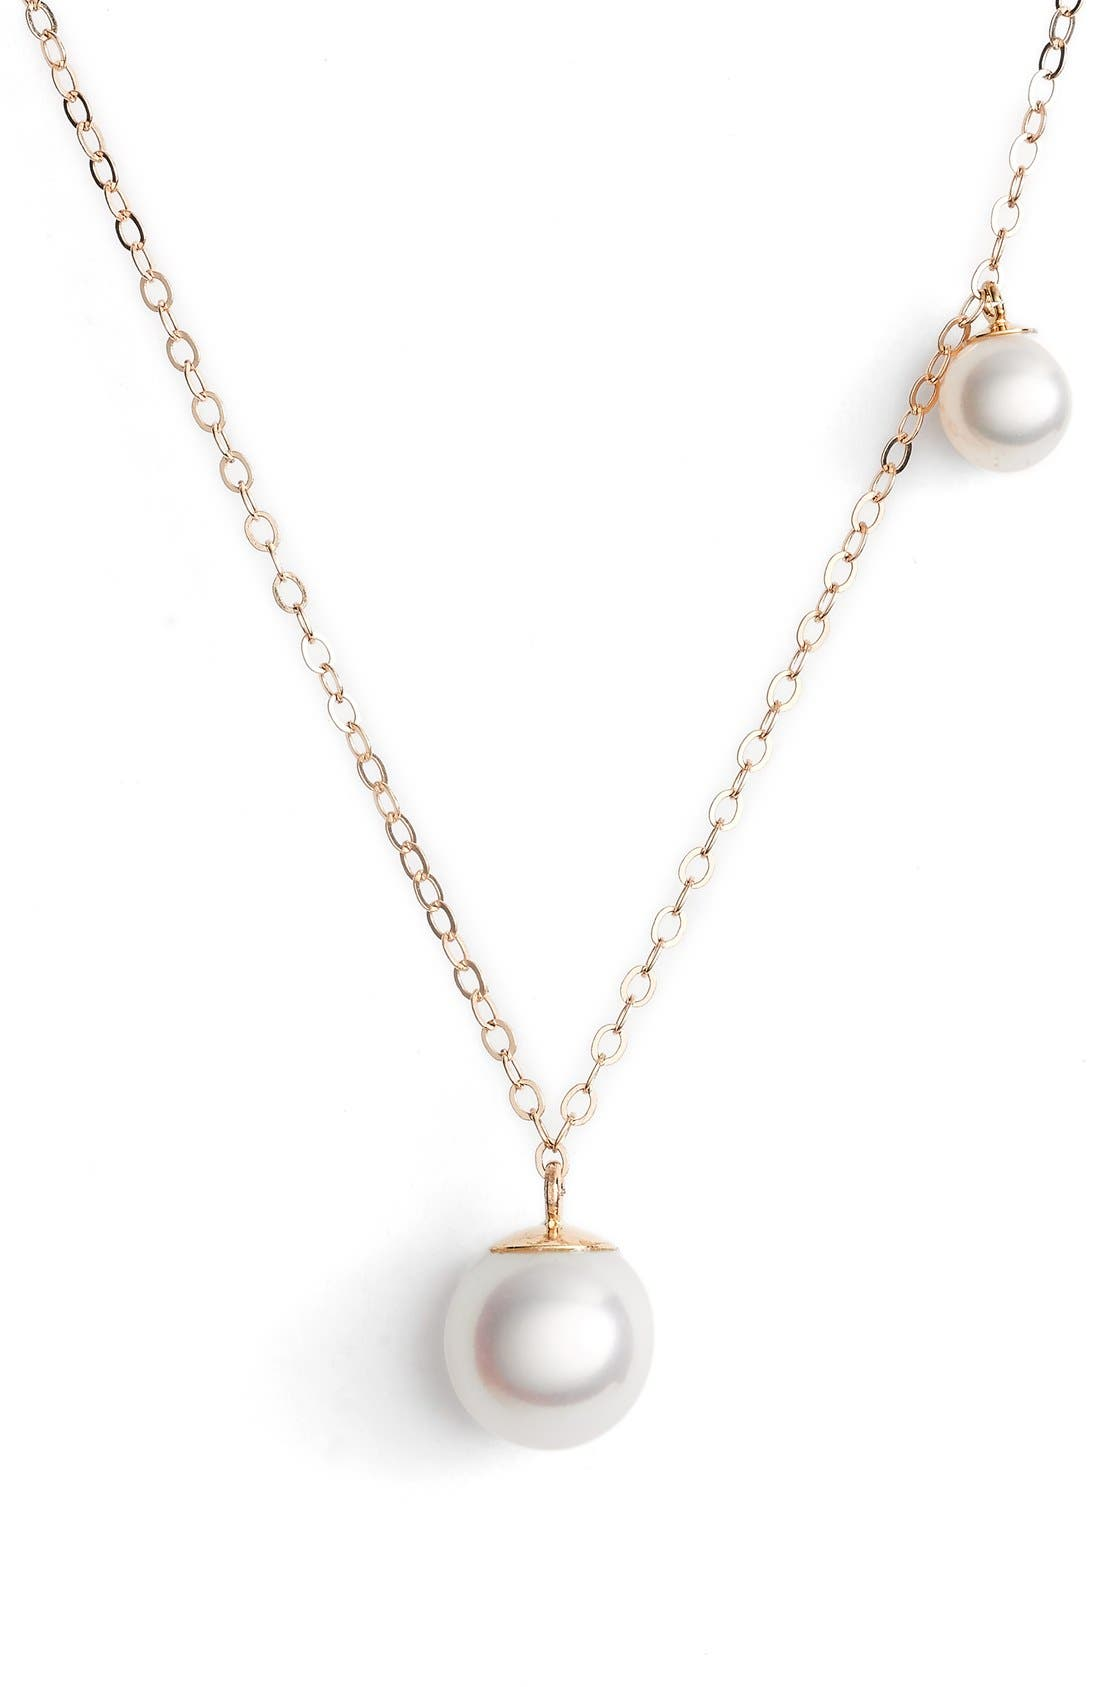 Double Pearl Pendant Necklace,                         Main,                         color, YELLOW GOLD/ PEARL